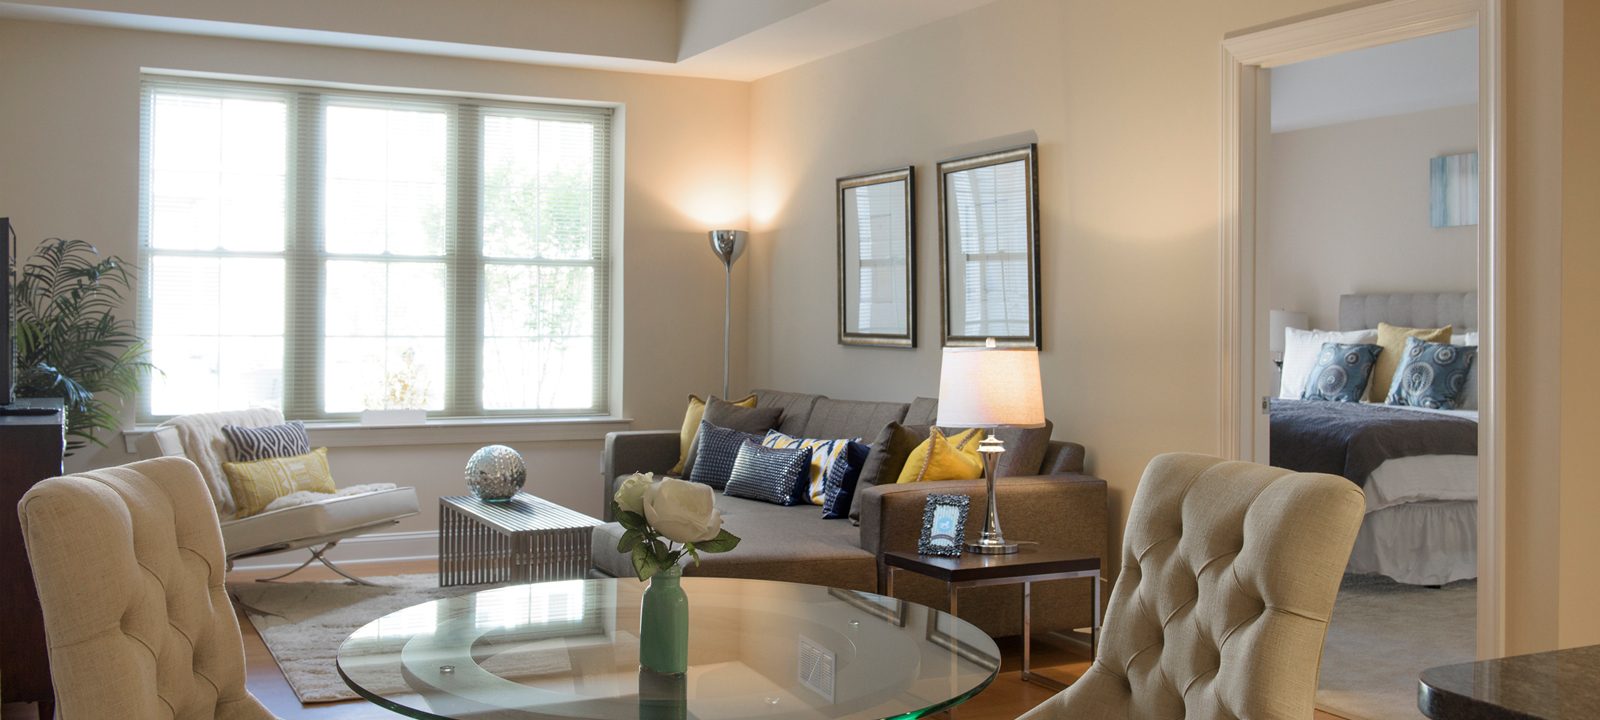 55 Luxury Apartments Exton Meridian At Eagleview Amenities